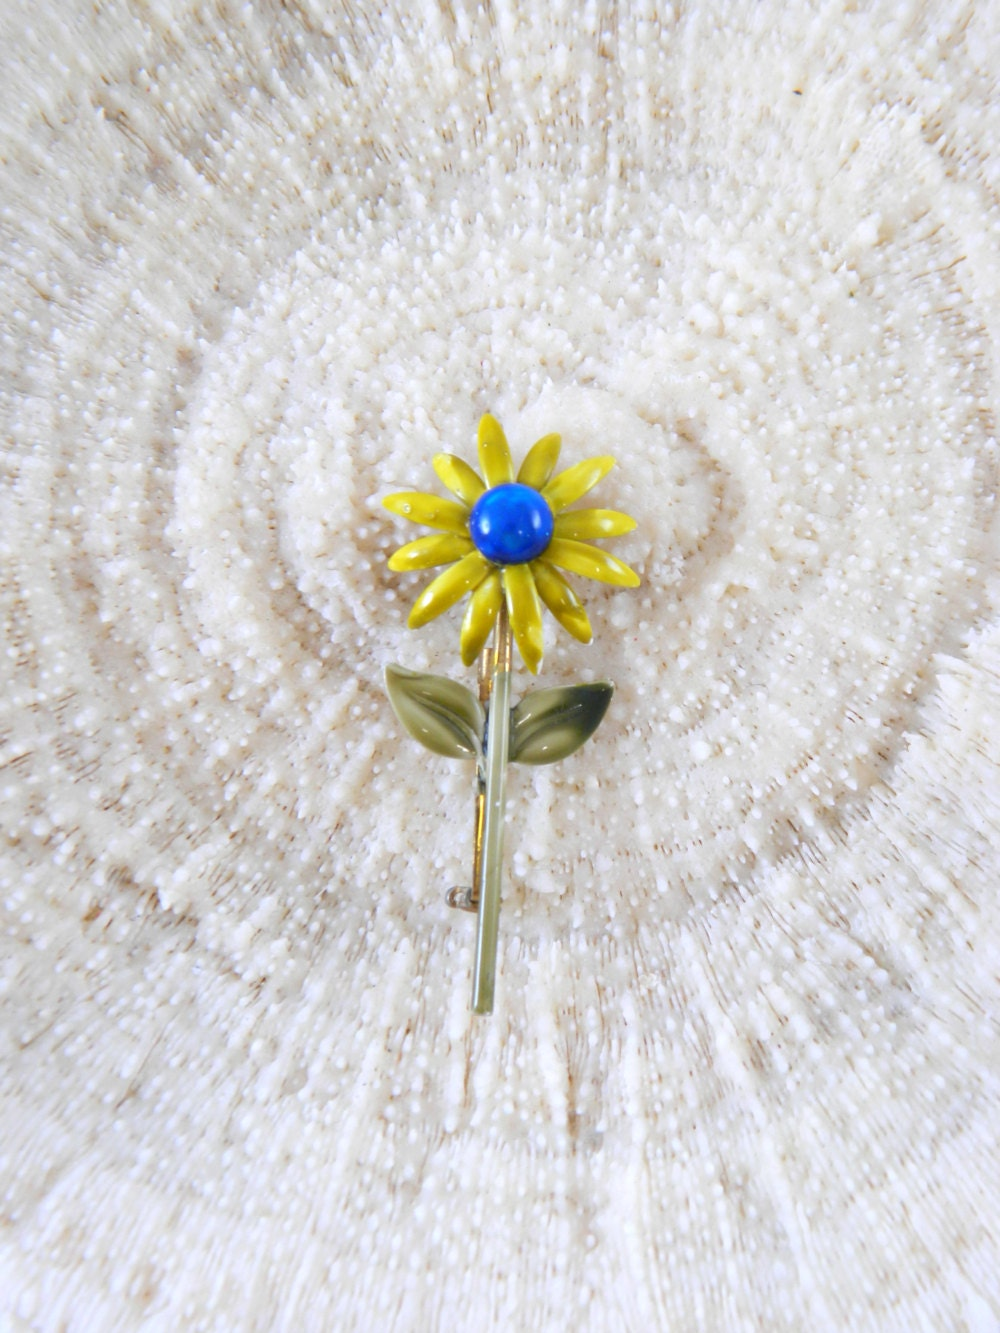 Vintage 1960s Broochenamel Yellow Flower Green Stem Pin With Blue Marble Centerazed Marbelized Enamelmid Century Mod